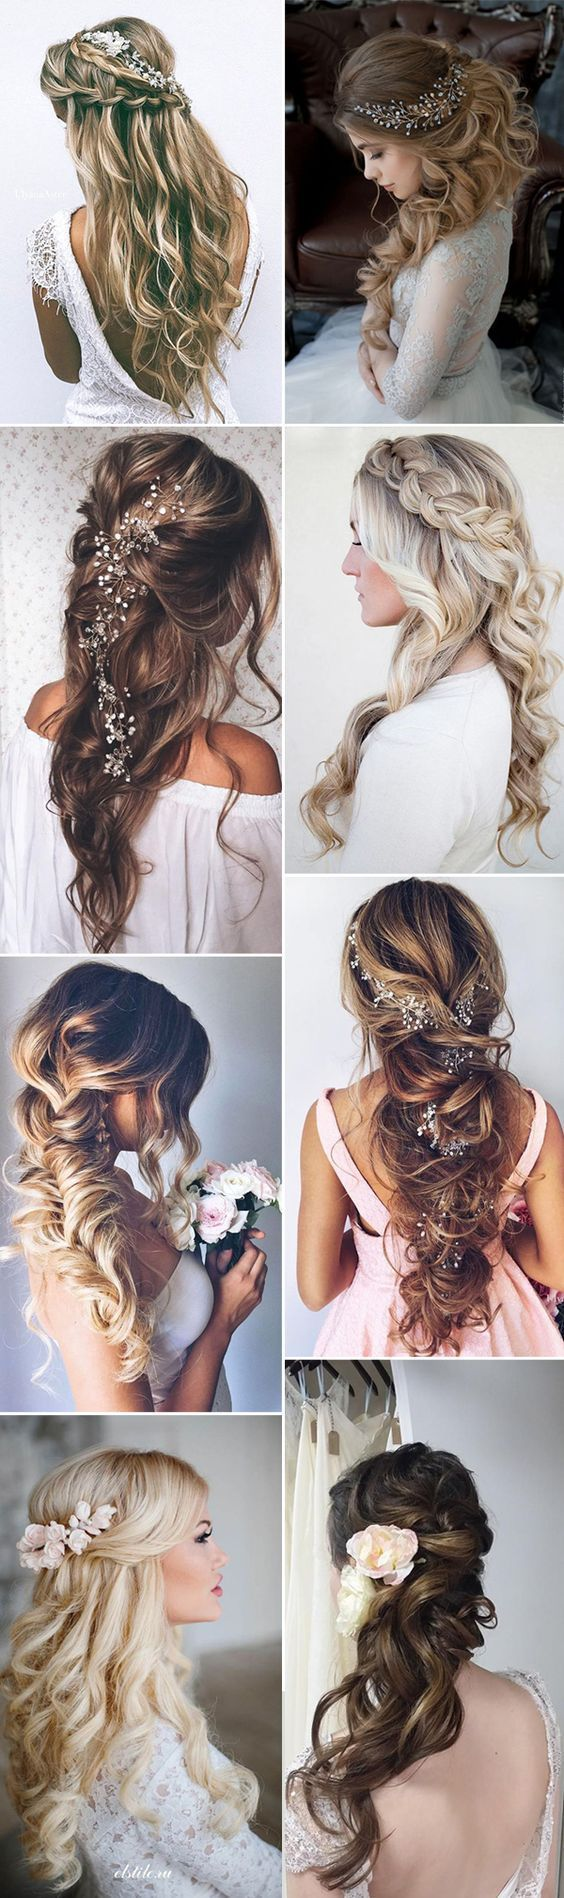 new wedding hairstyles for brides and flower girls long